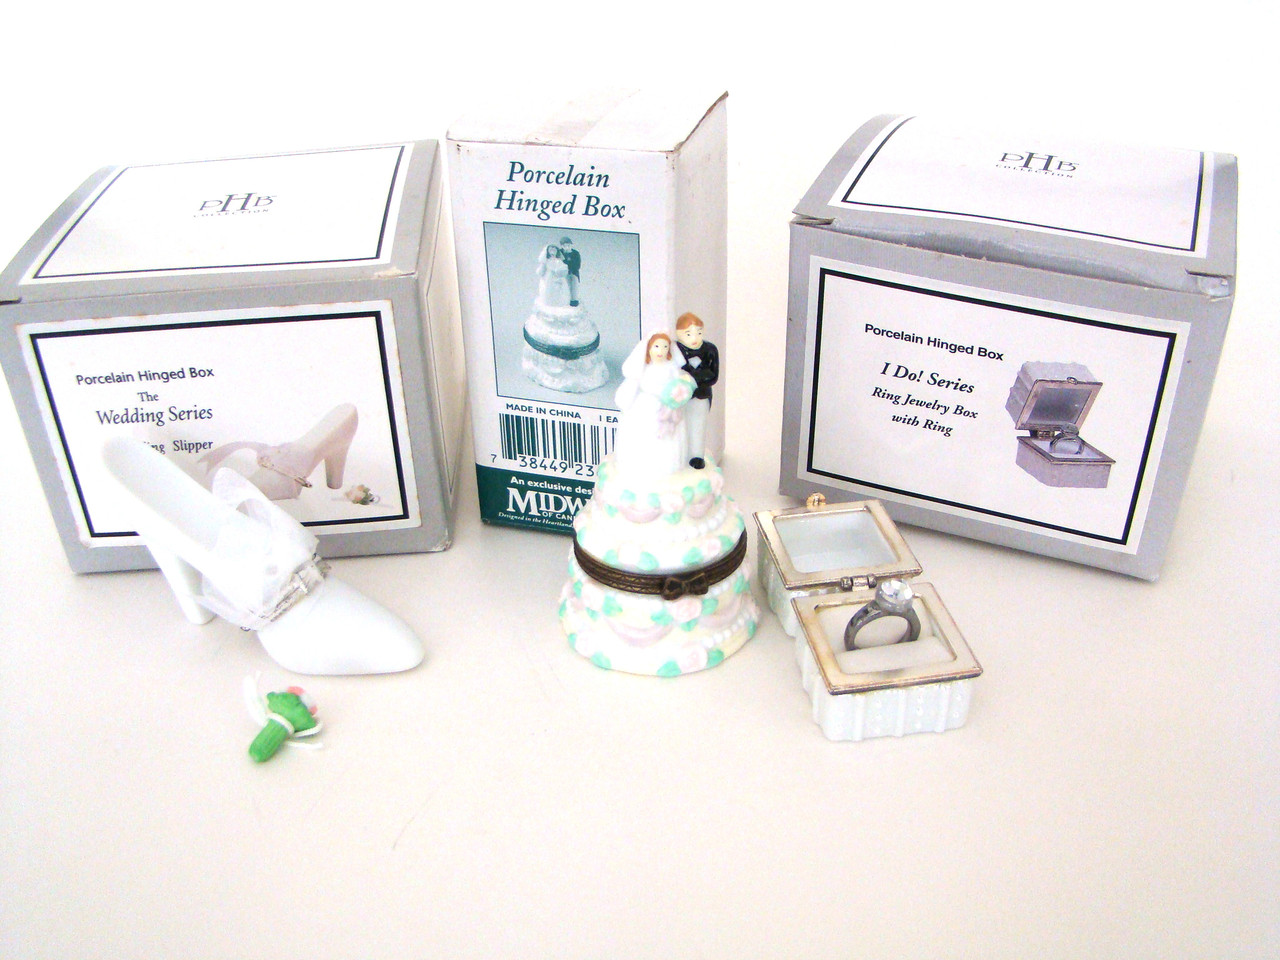 Wedding Set of 3 PHB Midwest of Cannon Falls Boxes